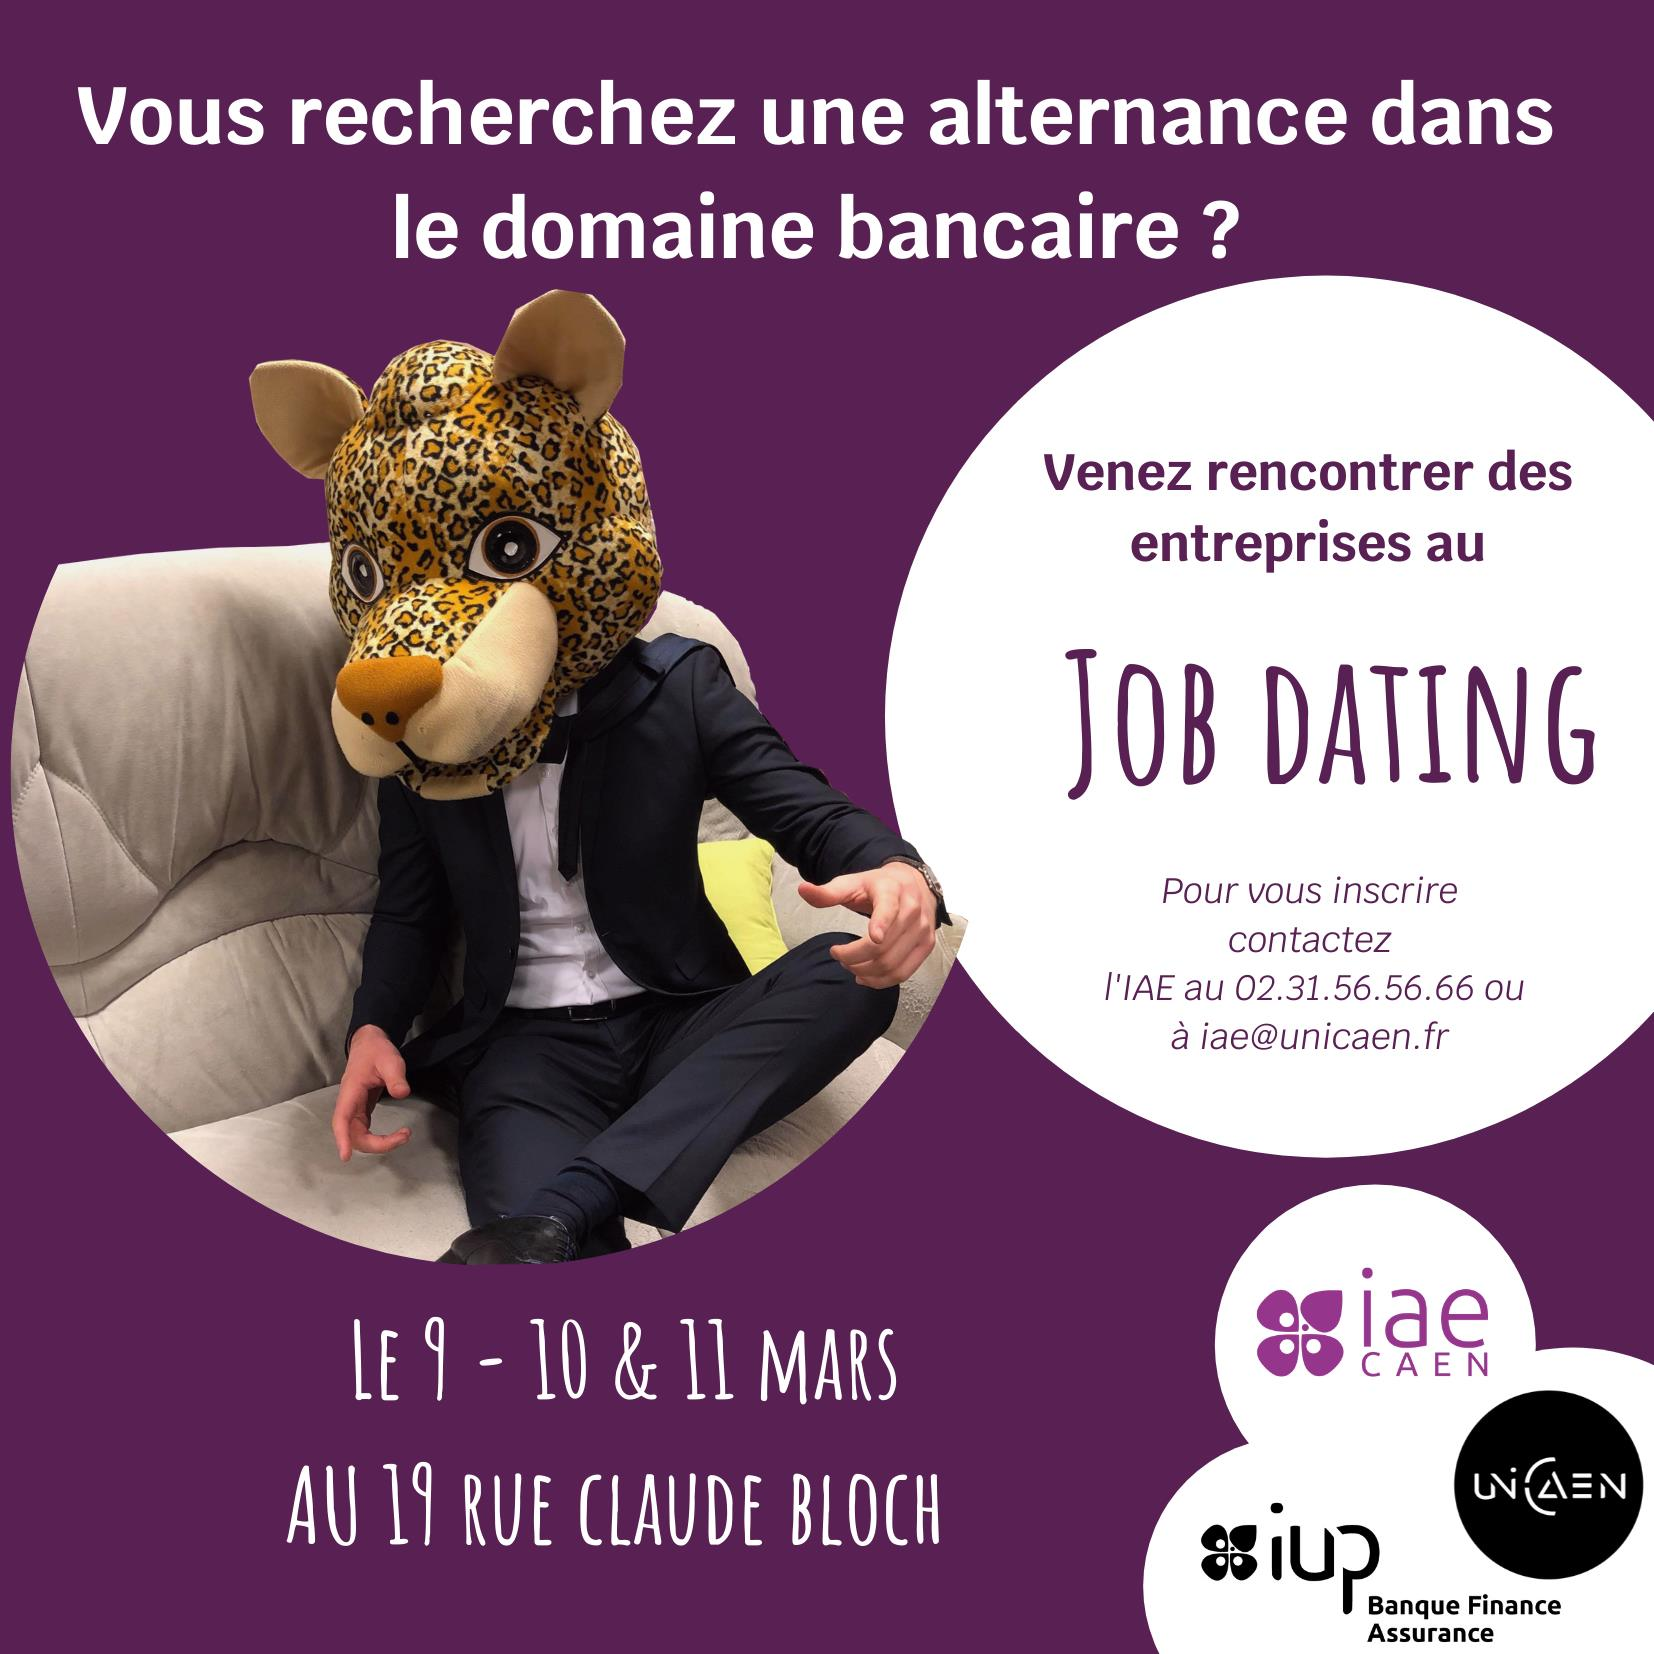 Job dating Filière Banque, Finance, Assurance